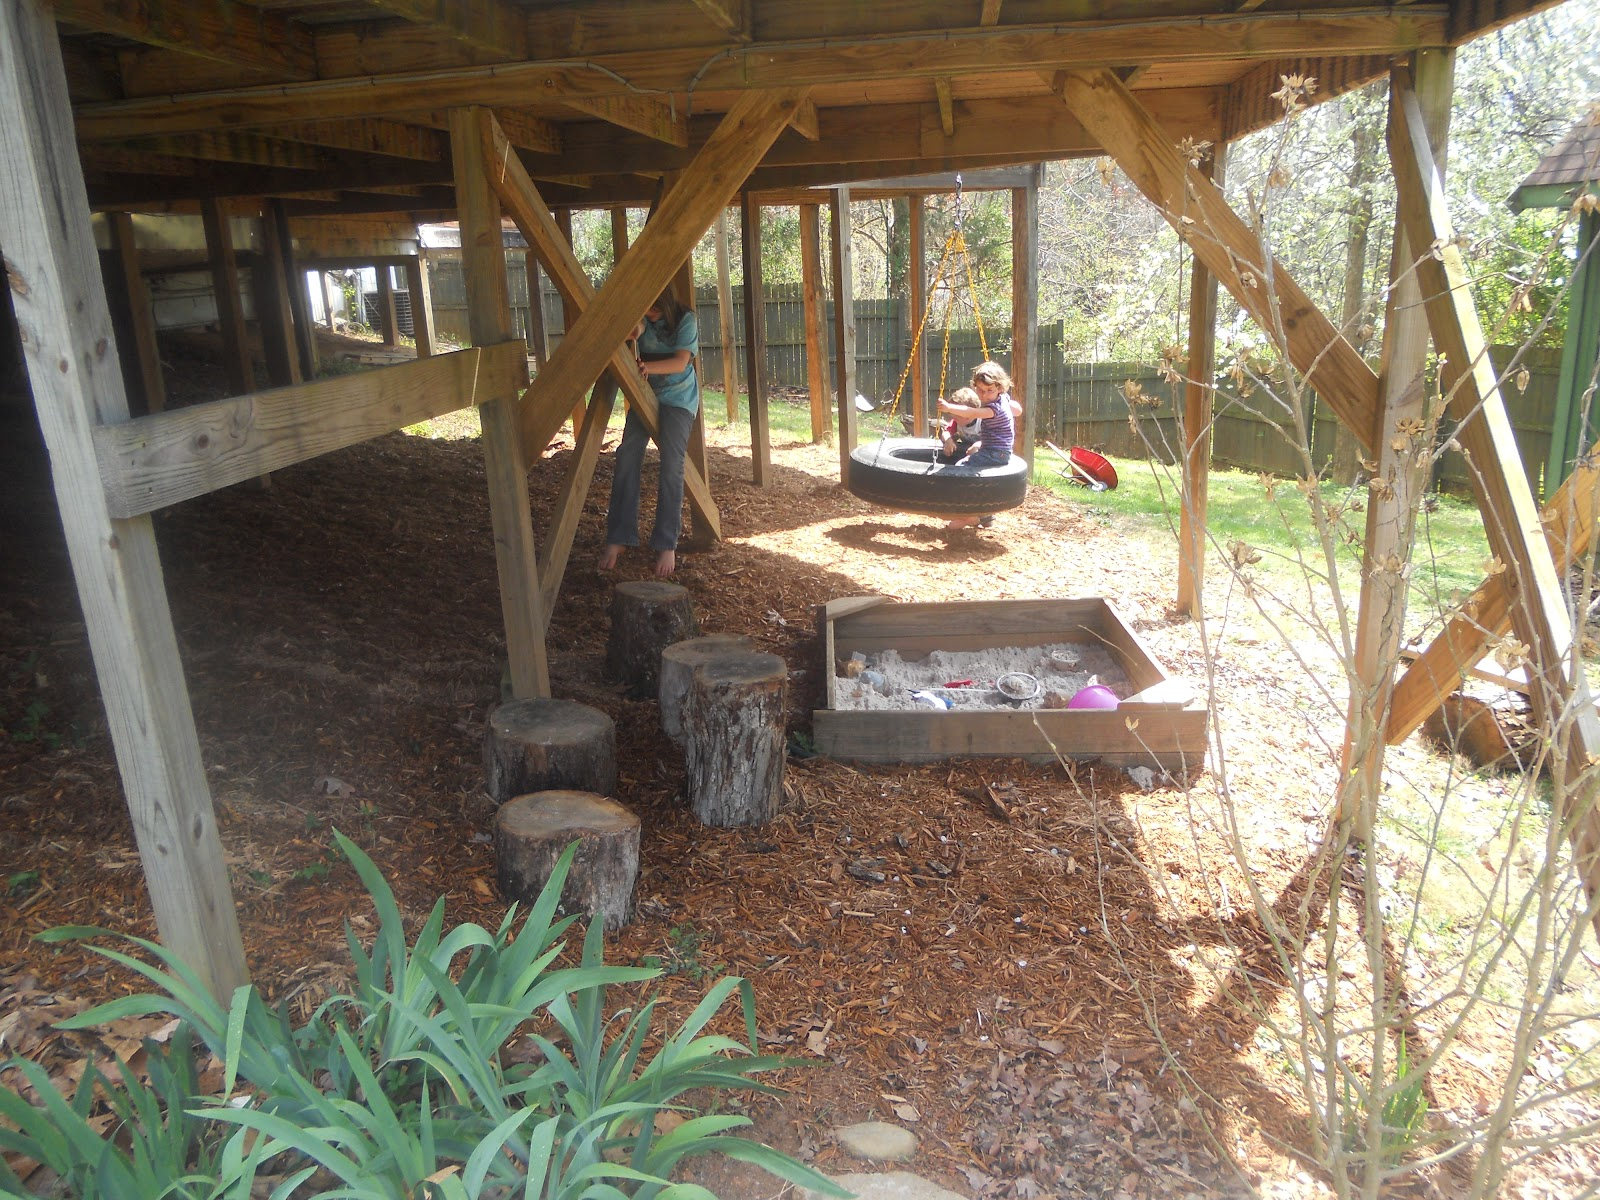 The Five of Us Outdoor Play Spaces